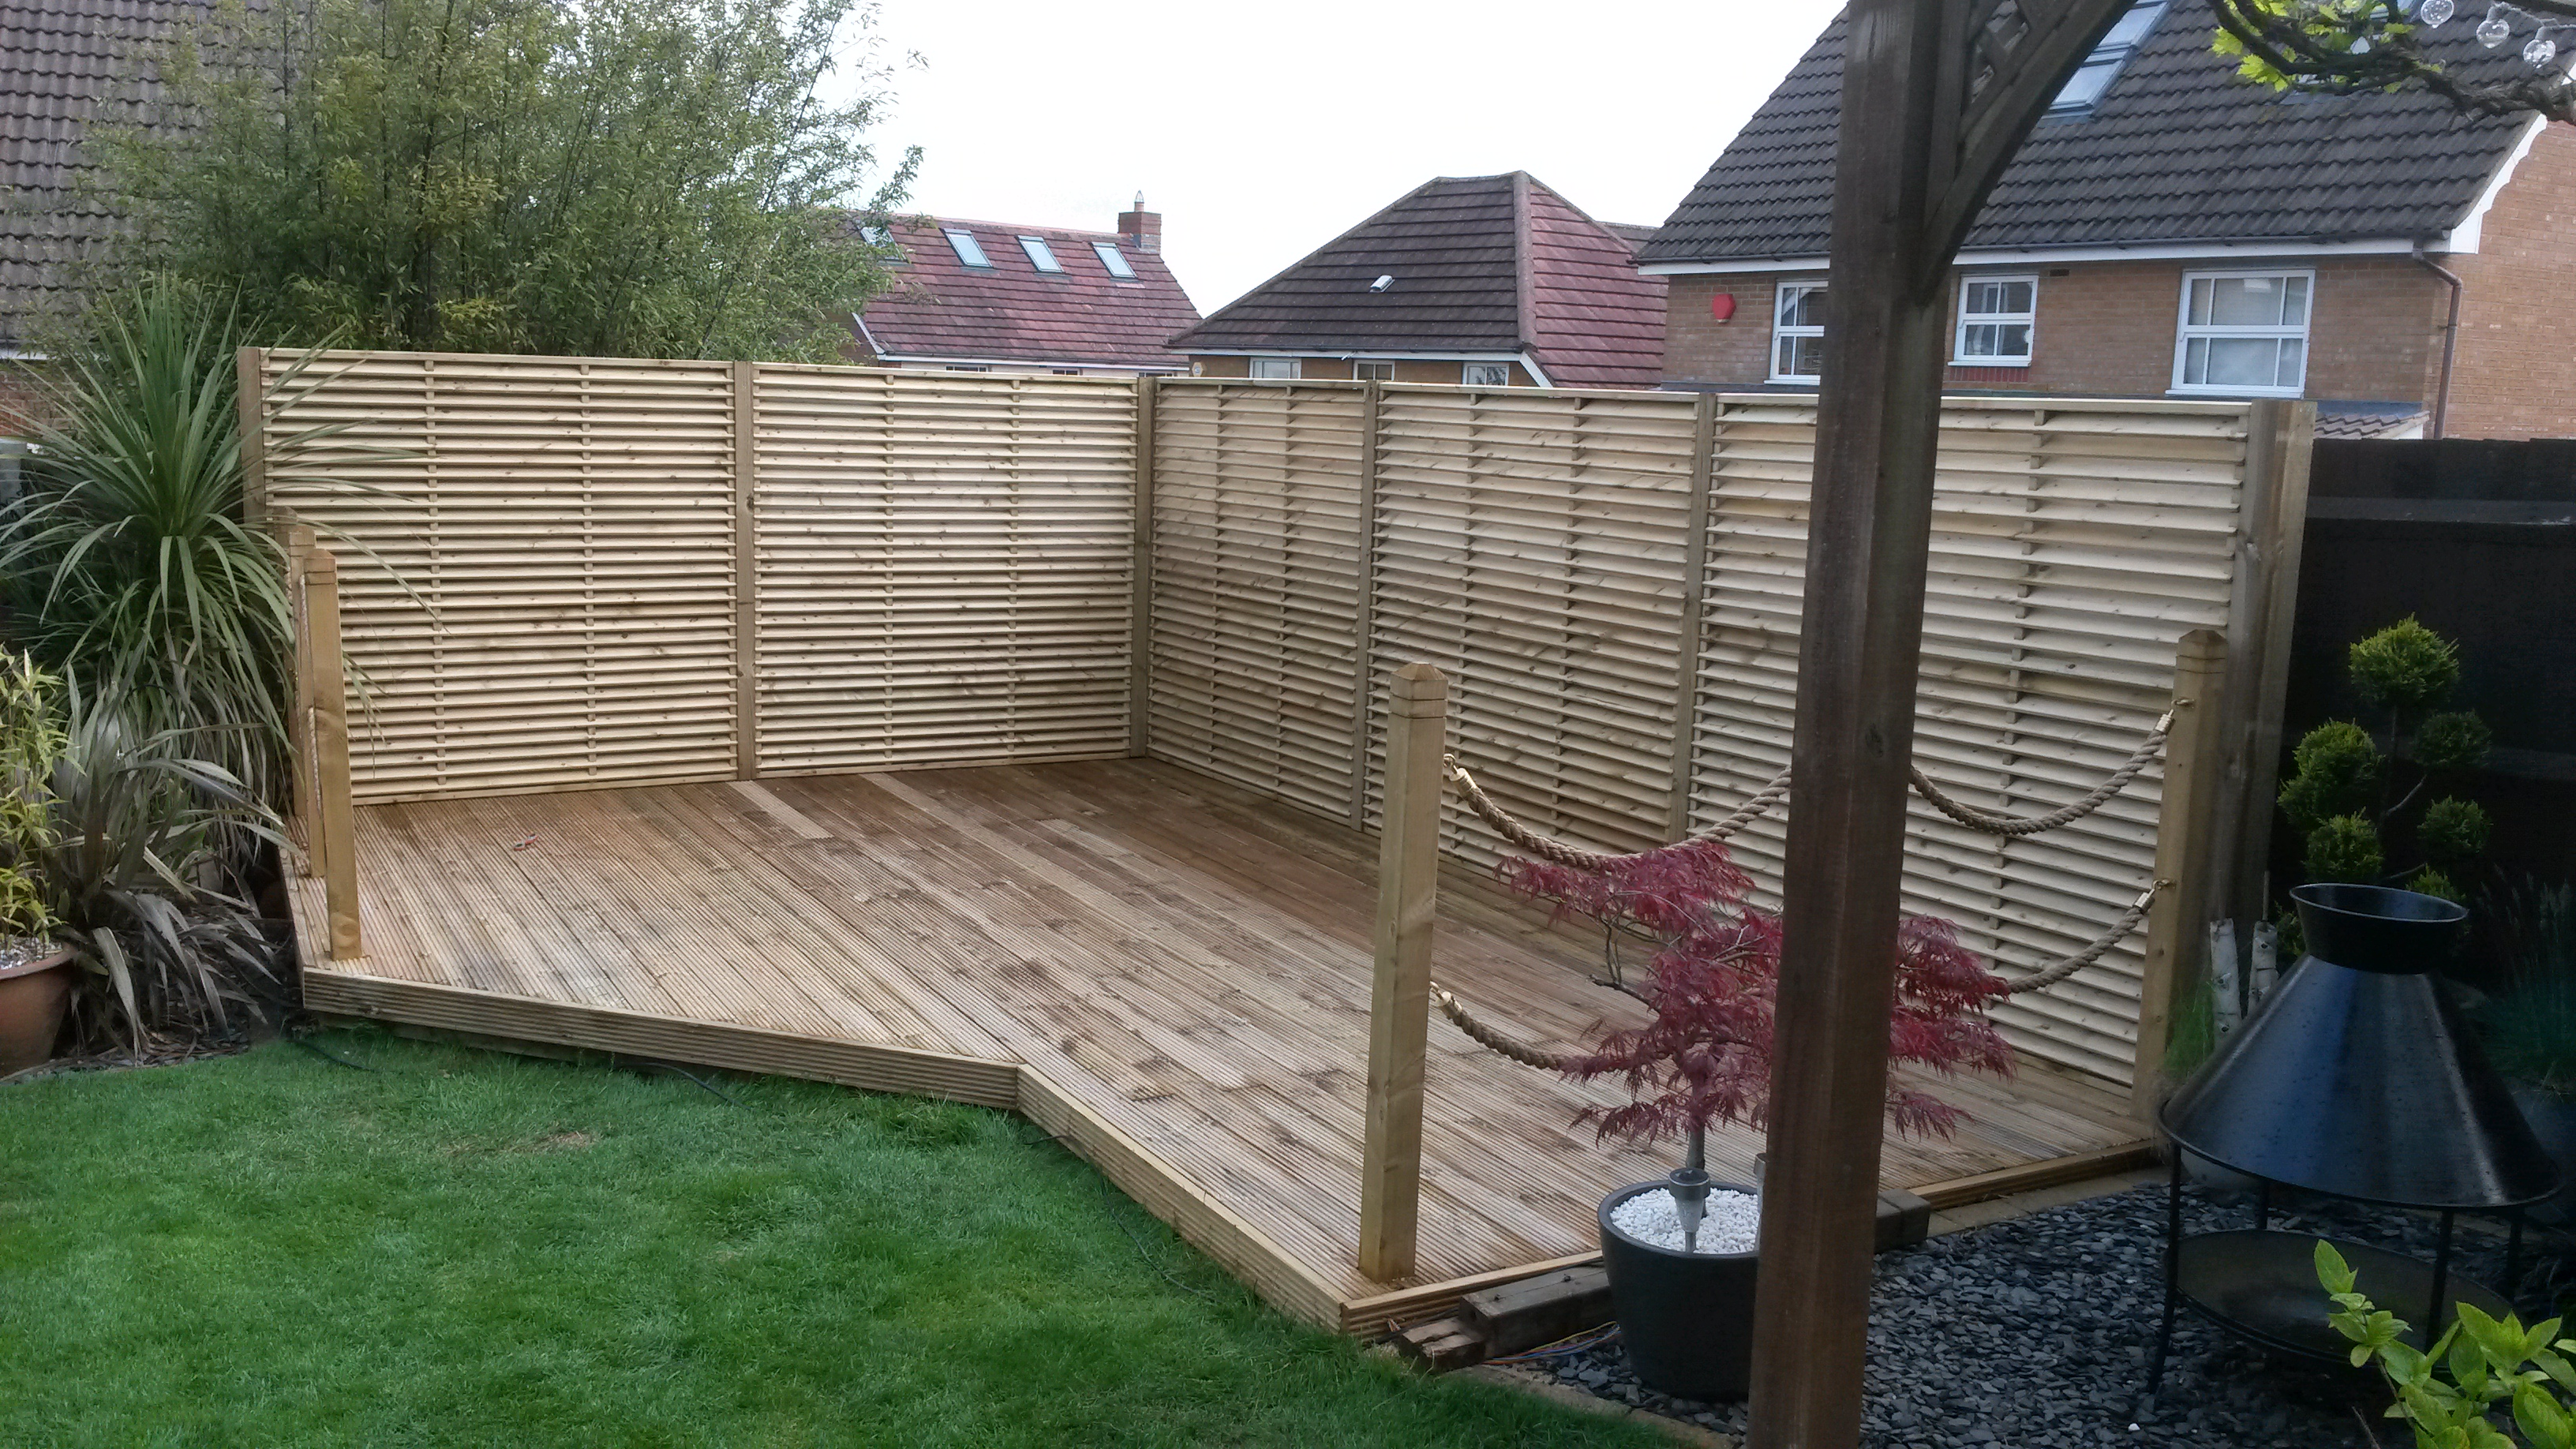 Installation with venetian panels quality fencing and gates installation with venetian panels baanklon Choice Image